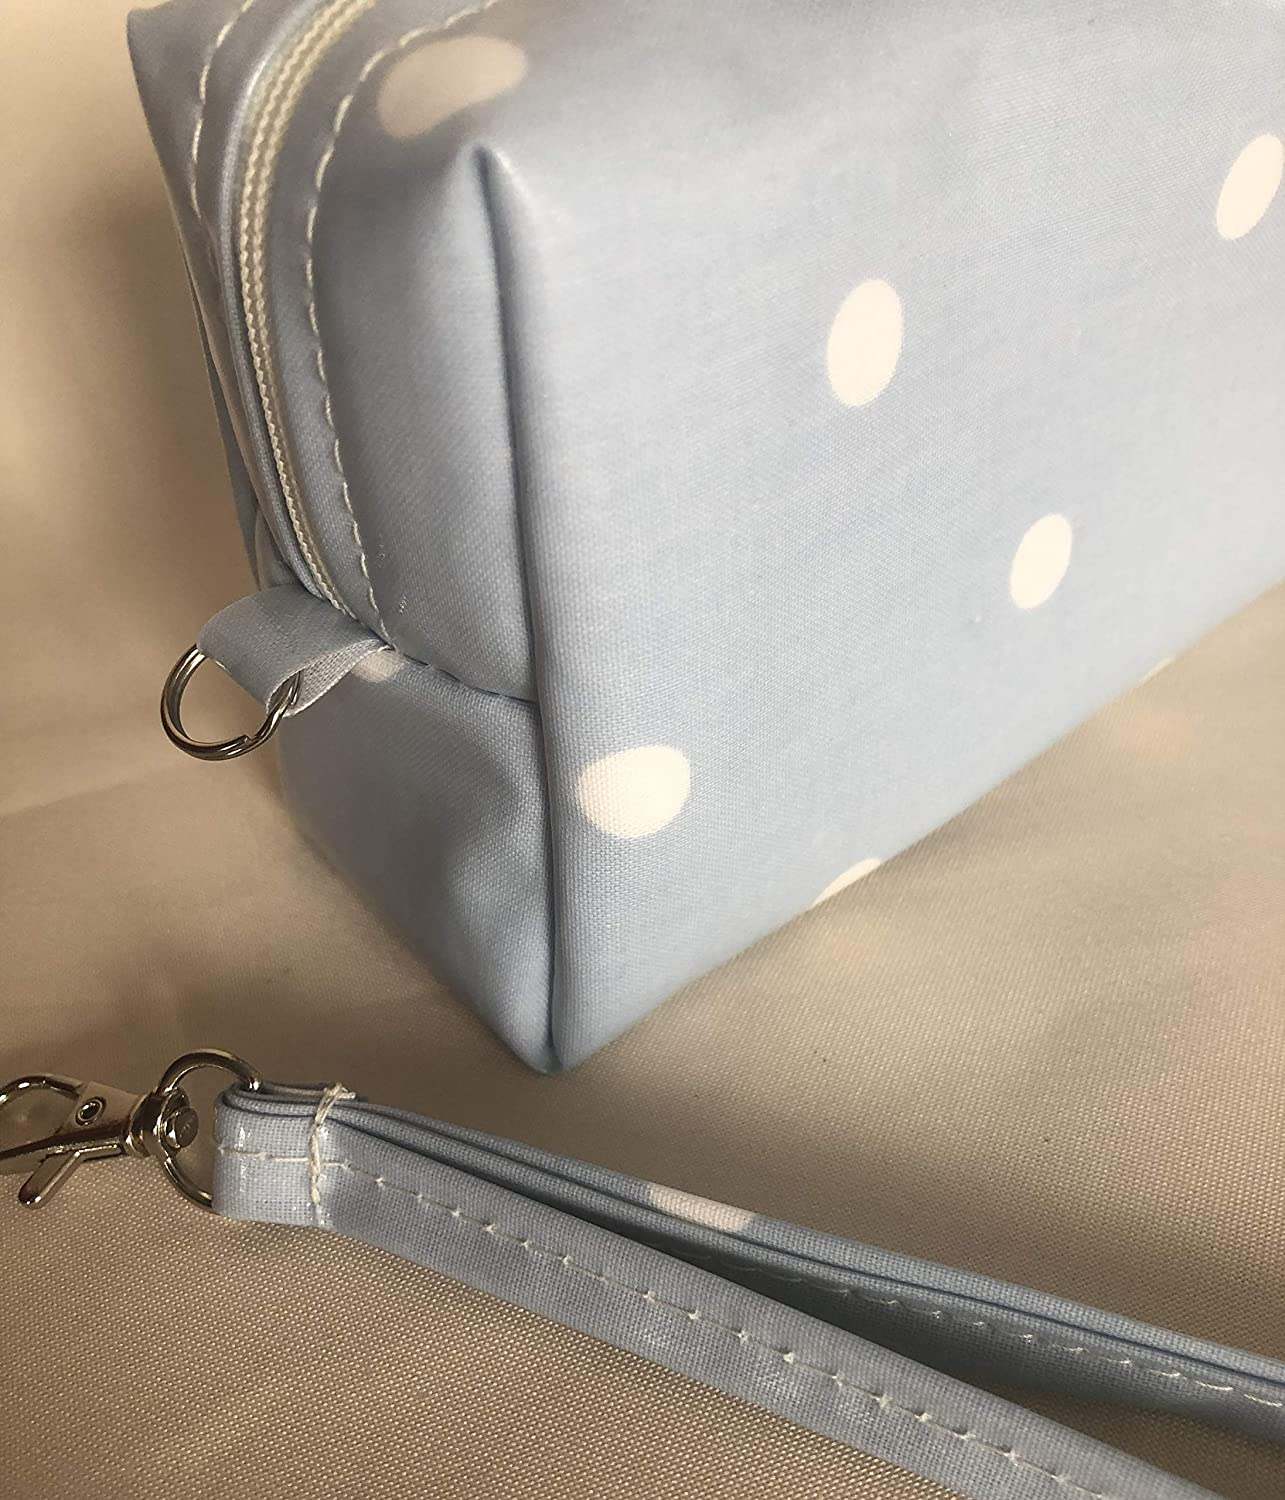 insulated medical travel bag Insulated diabetic supply bag EpiPen case baby blue spotty oilcloth,insulated snack pouch.